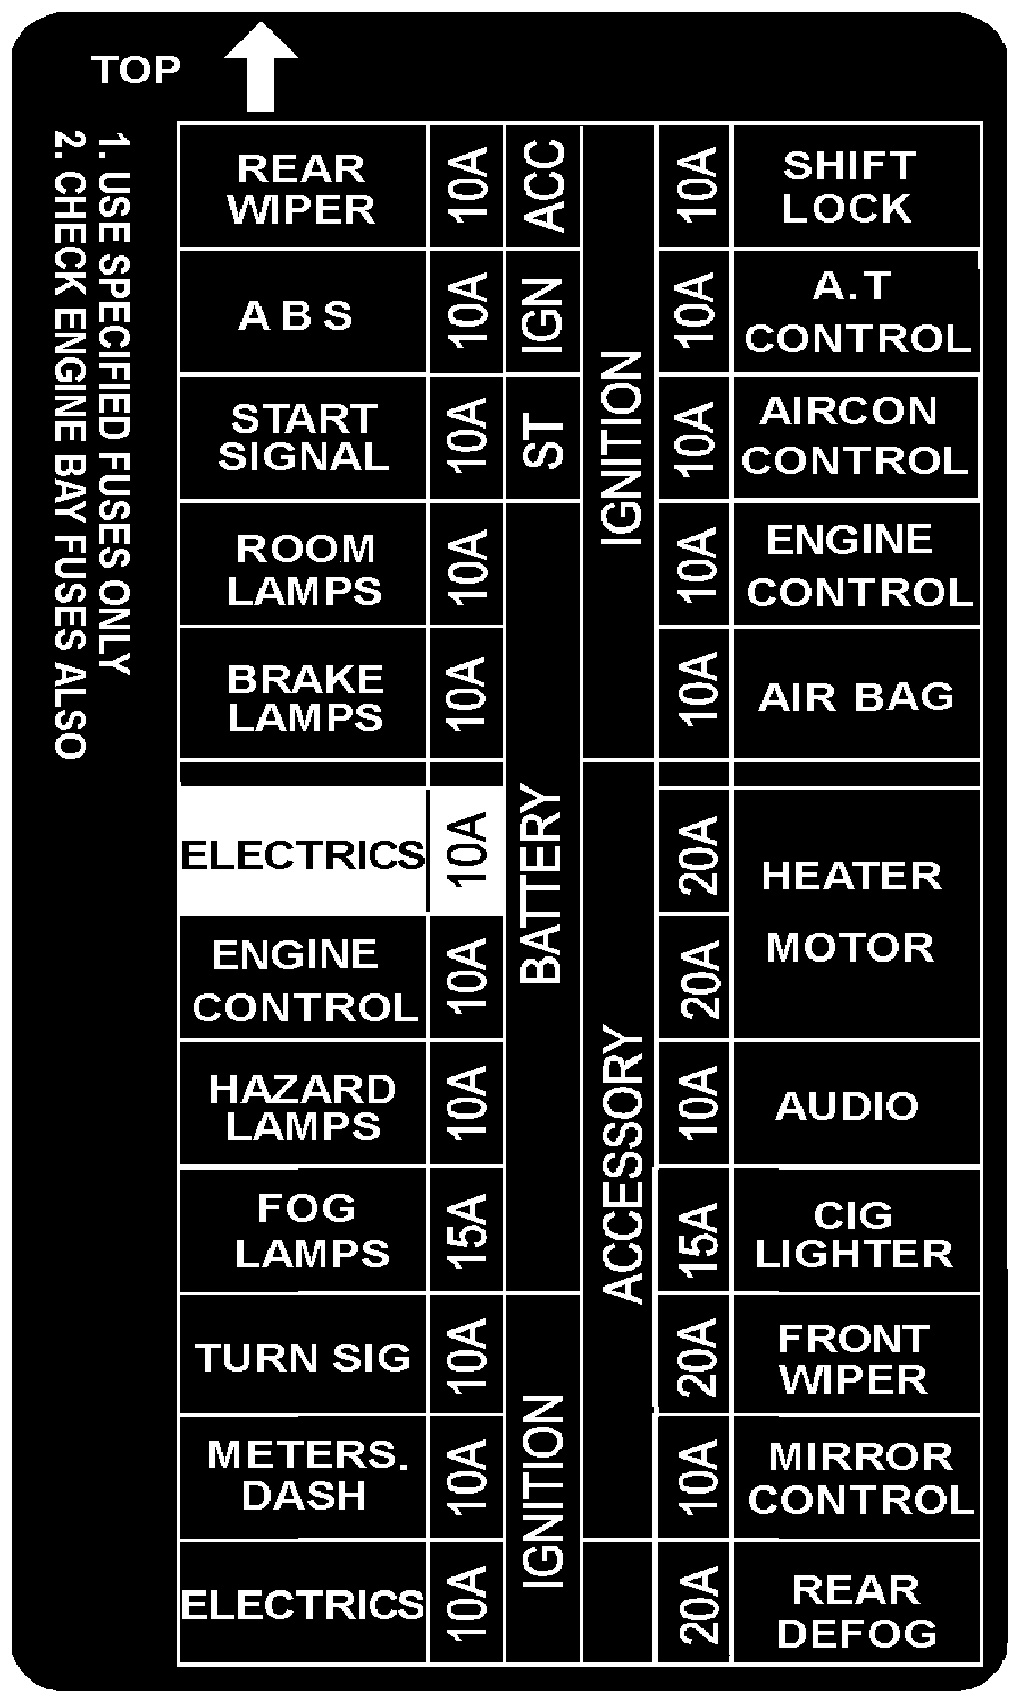 2004 wrx radio wiring diagram ge front load washer s13 fuse box under dash diagrams13 manual e bookss13